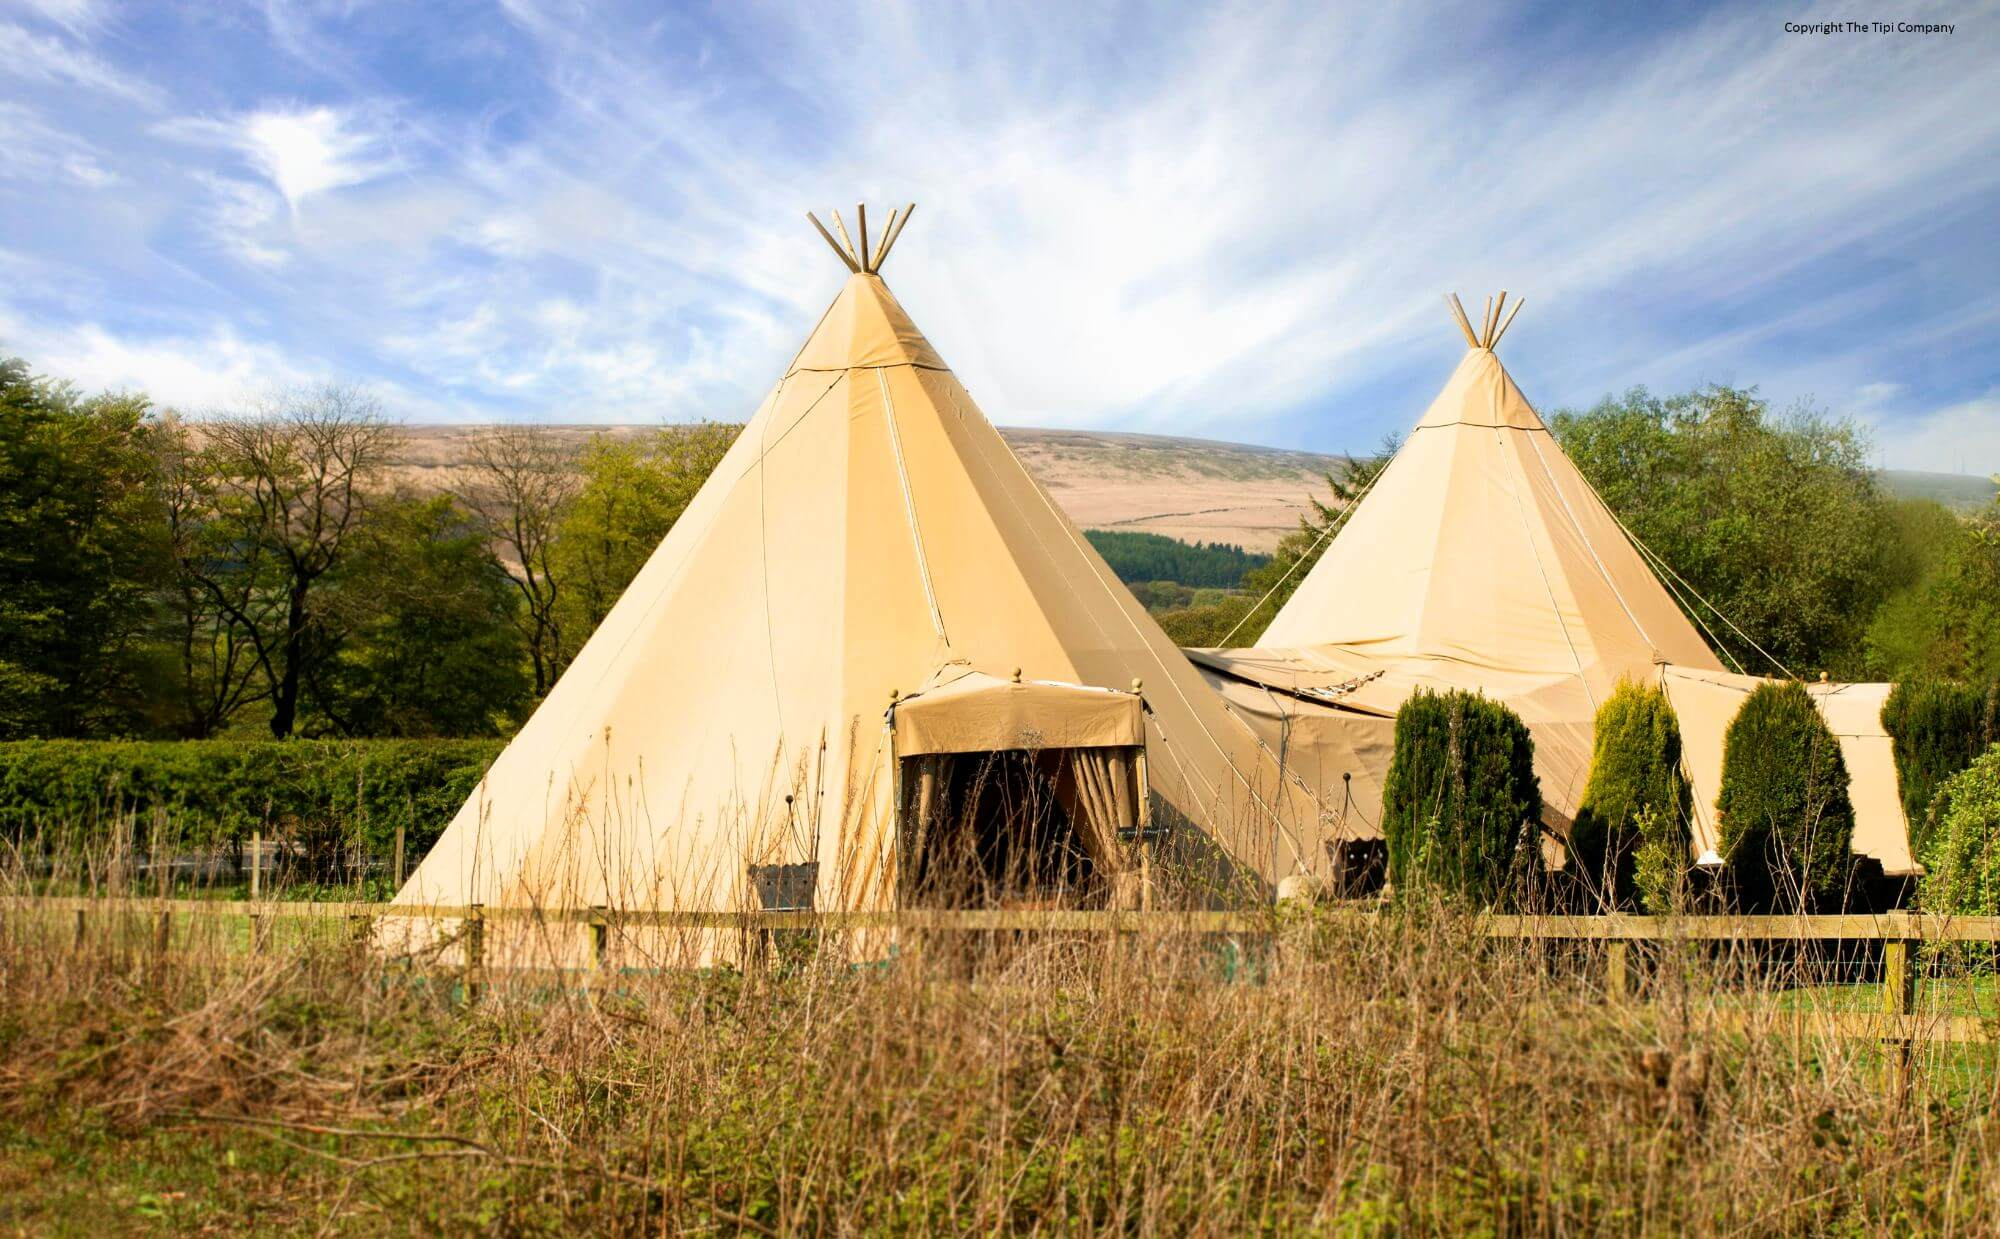 A photograph of two Tipis out in a green field